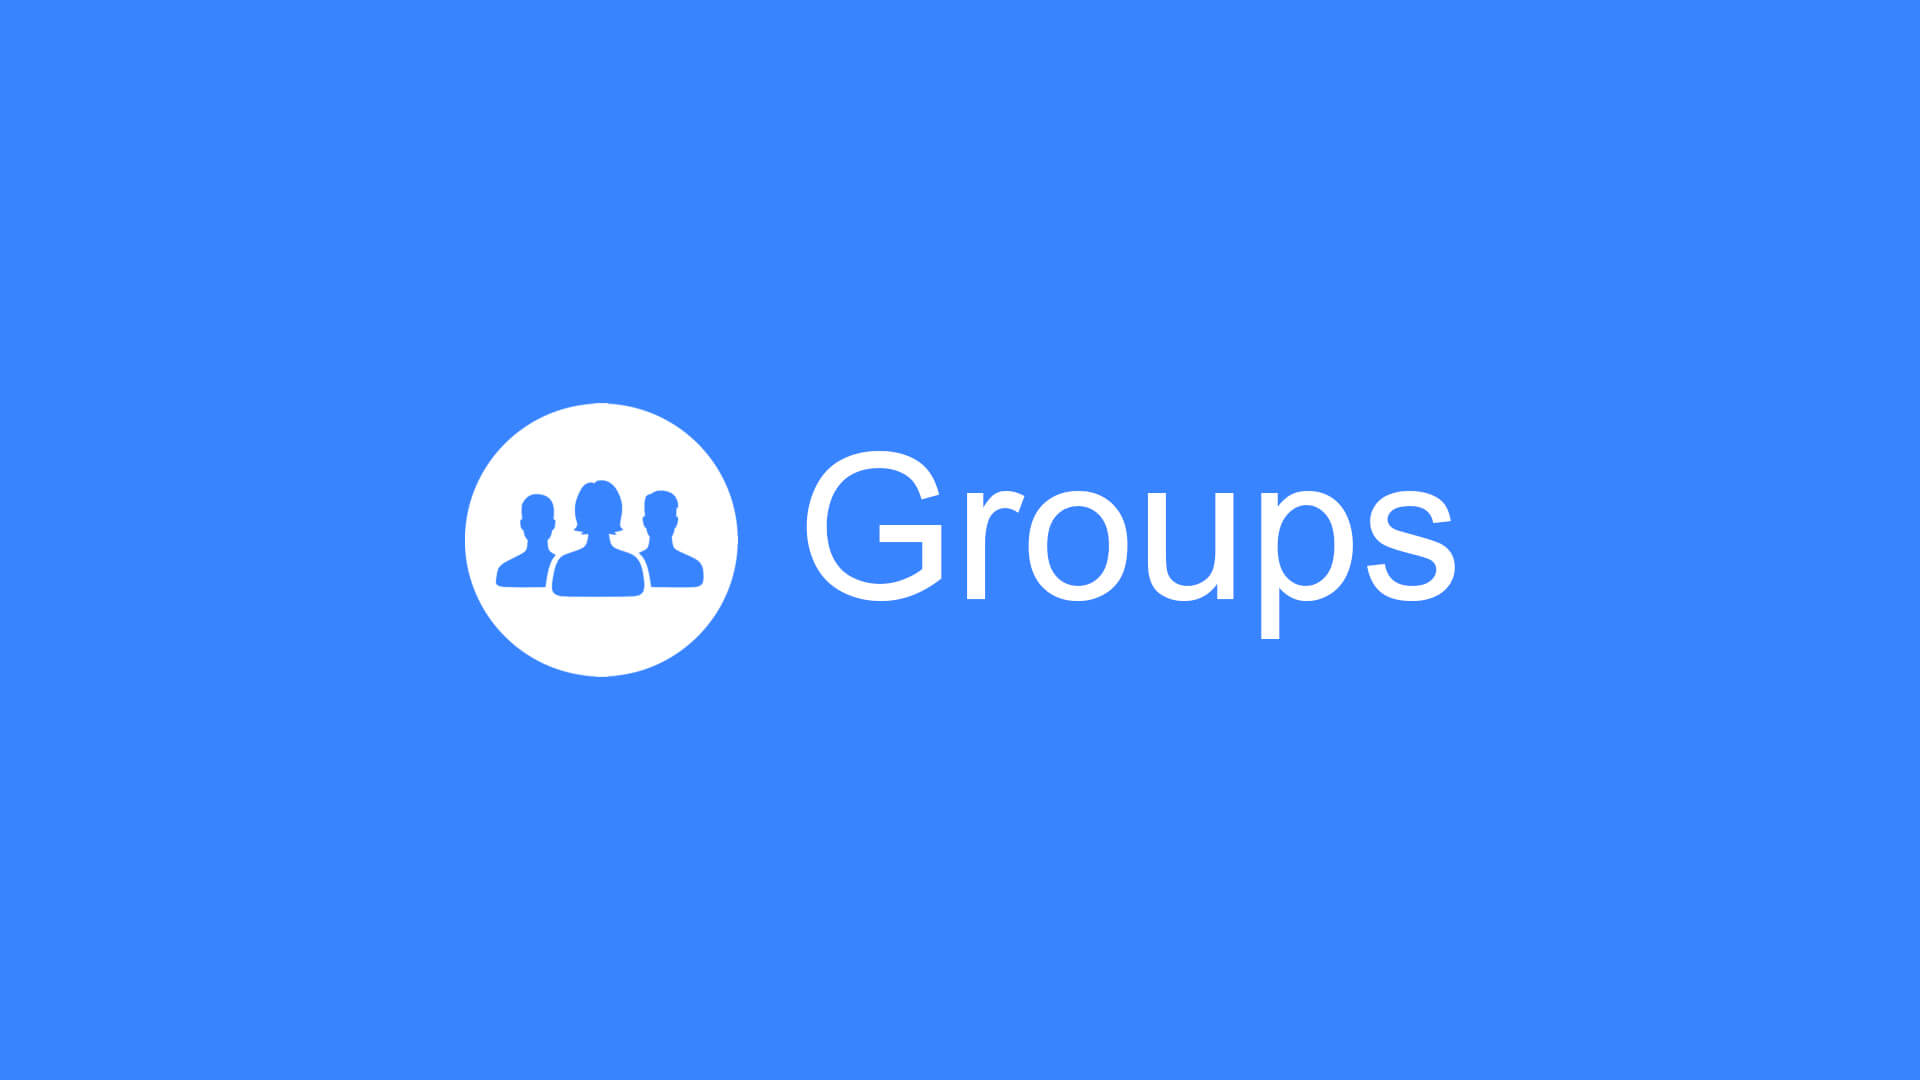 Ill share your link in my 443k group and get amazing traffic